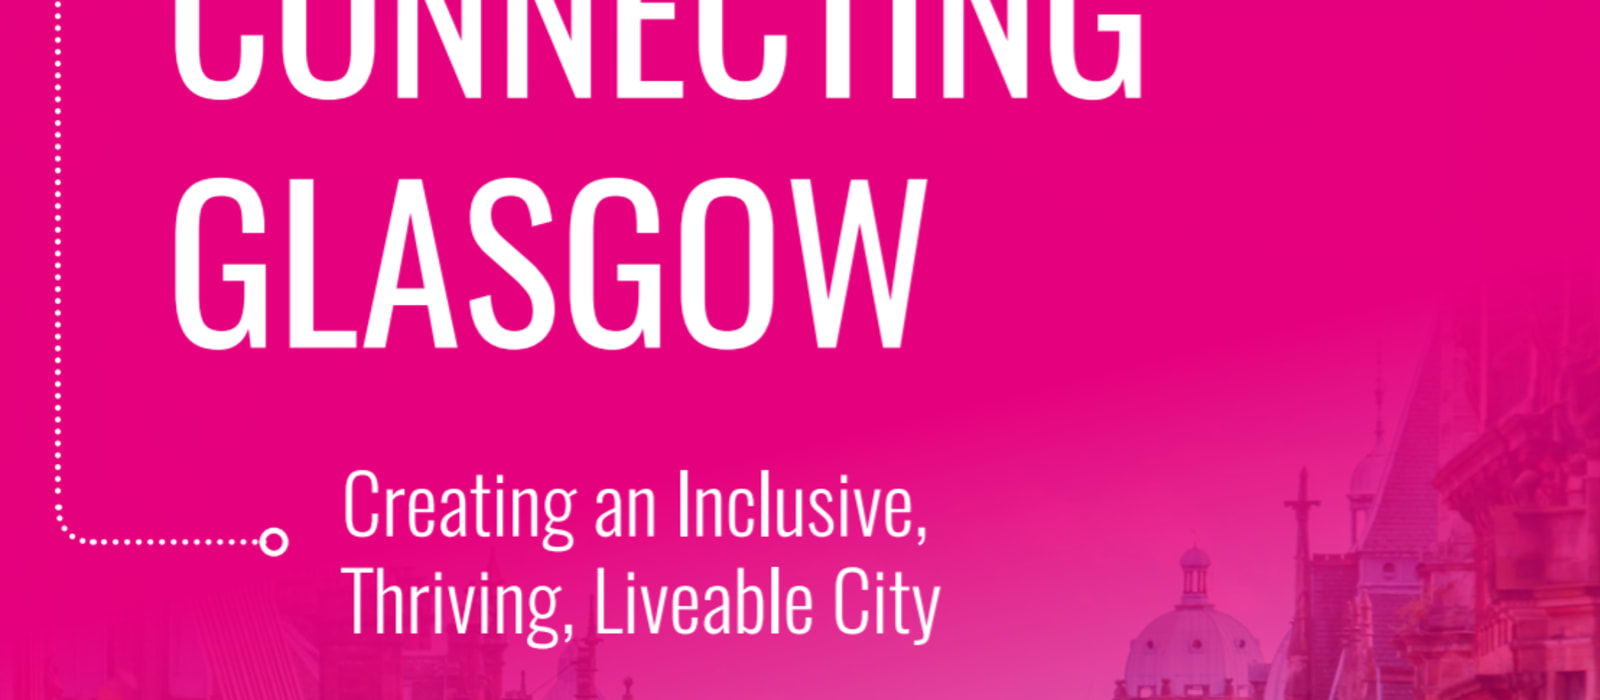 Connecting Glasgow report published